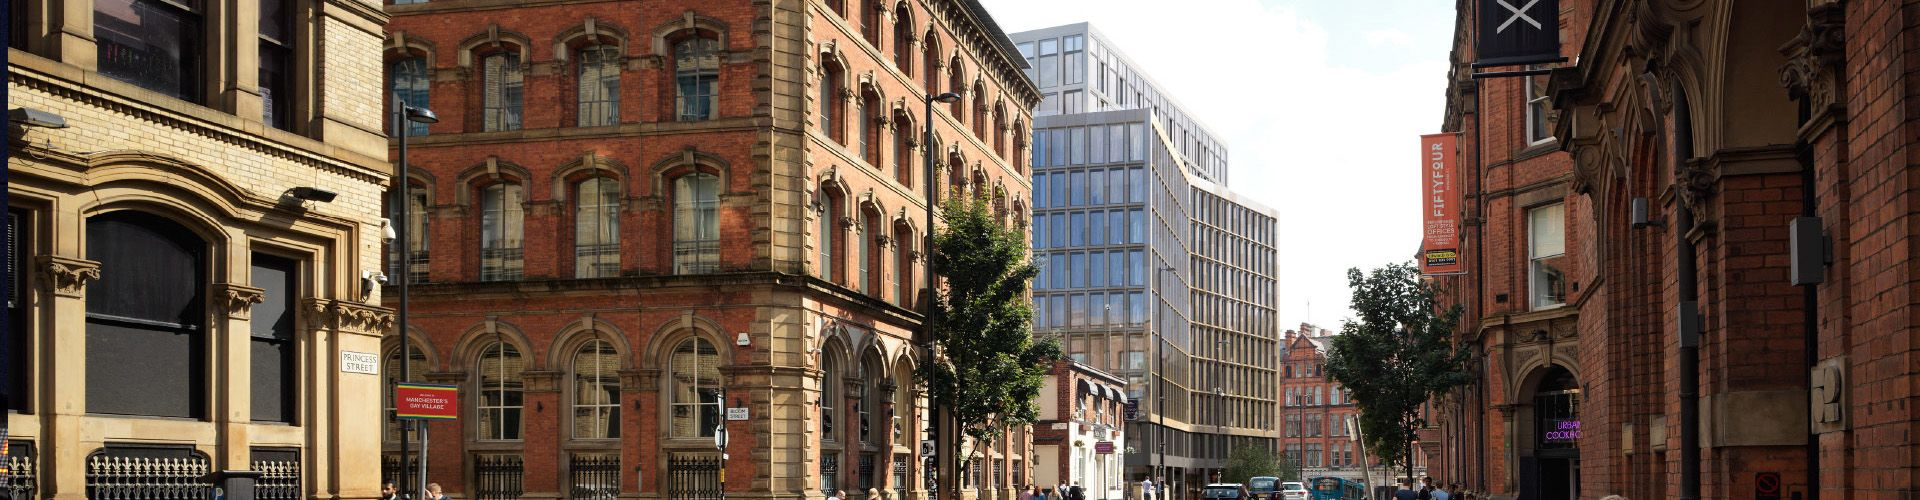 11.09.15_Reworked plans revealed for key site in Manchester city centre.jpg